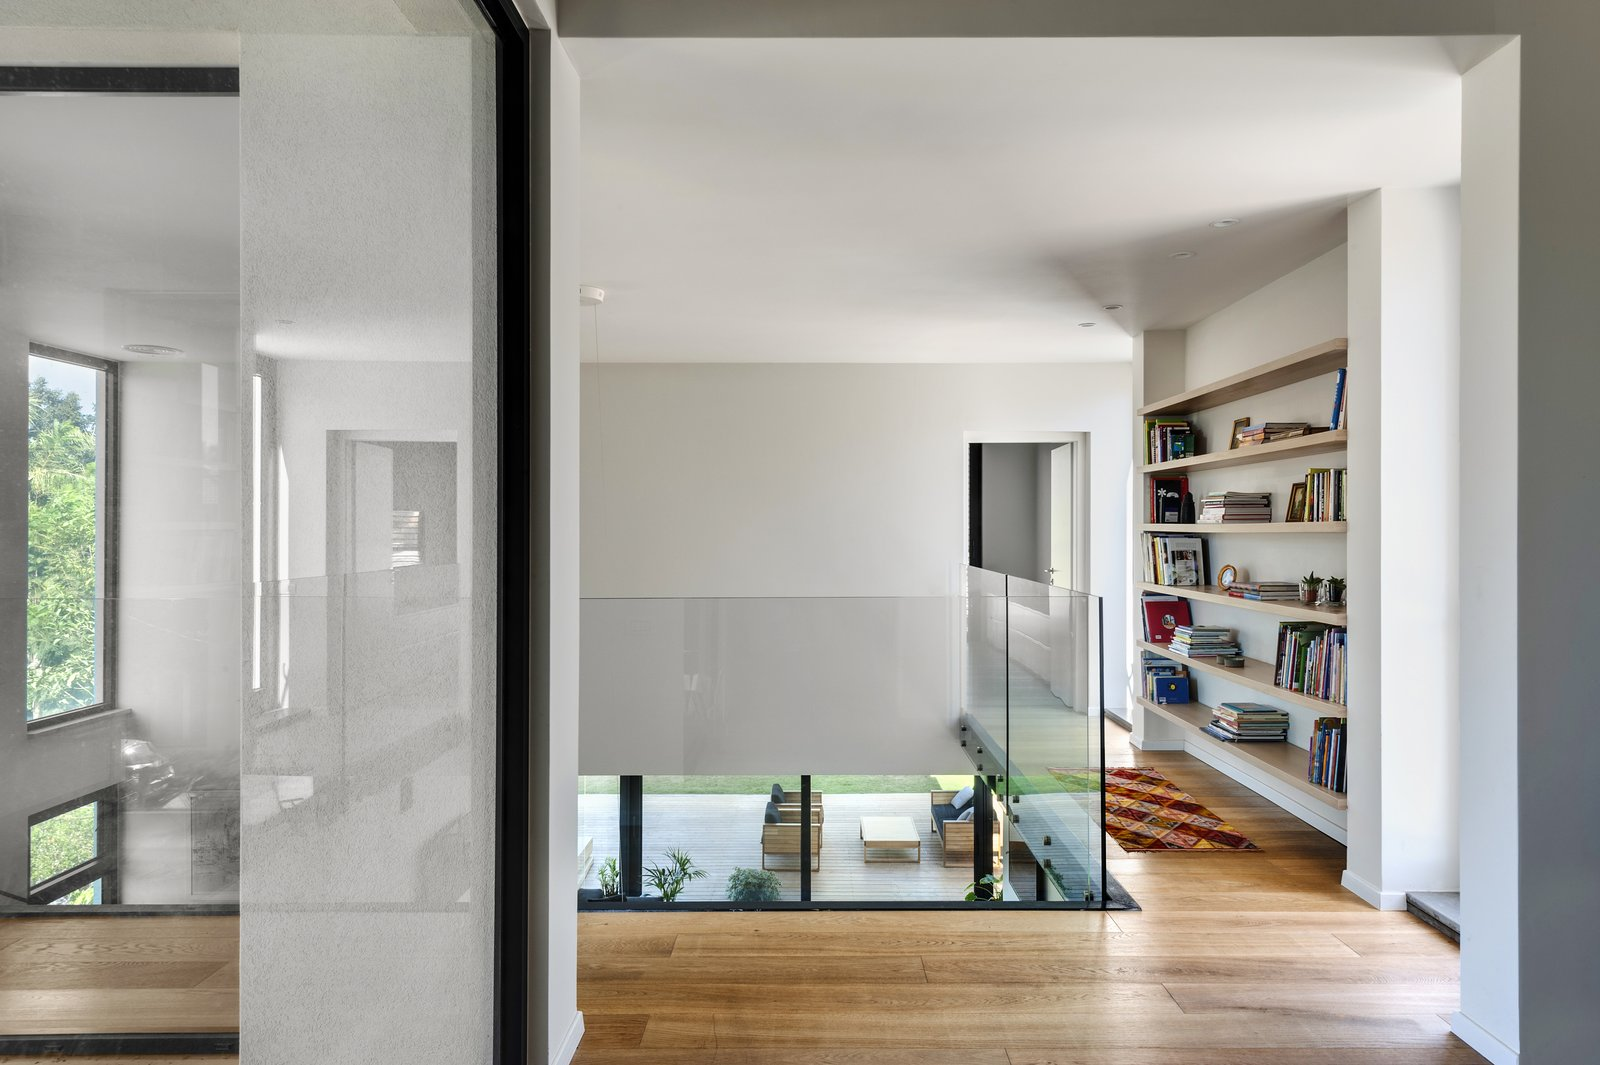 Storage Room and Shelves Storage Type Ravit Dvir Architecture and Design  The House in Harutzim